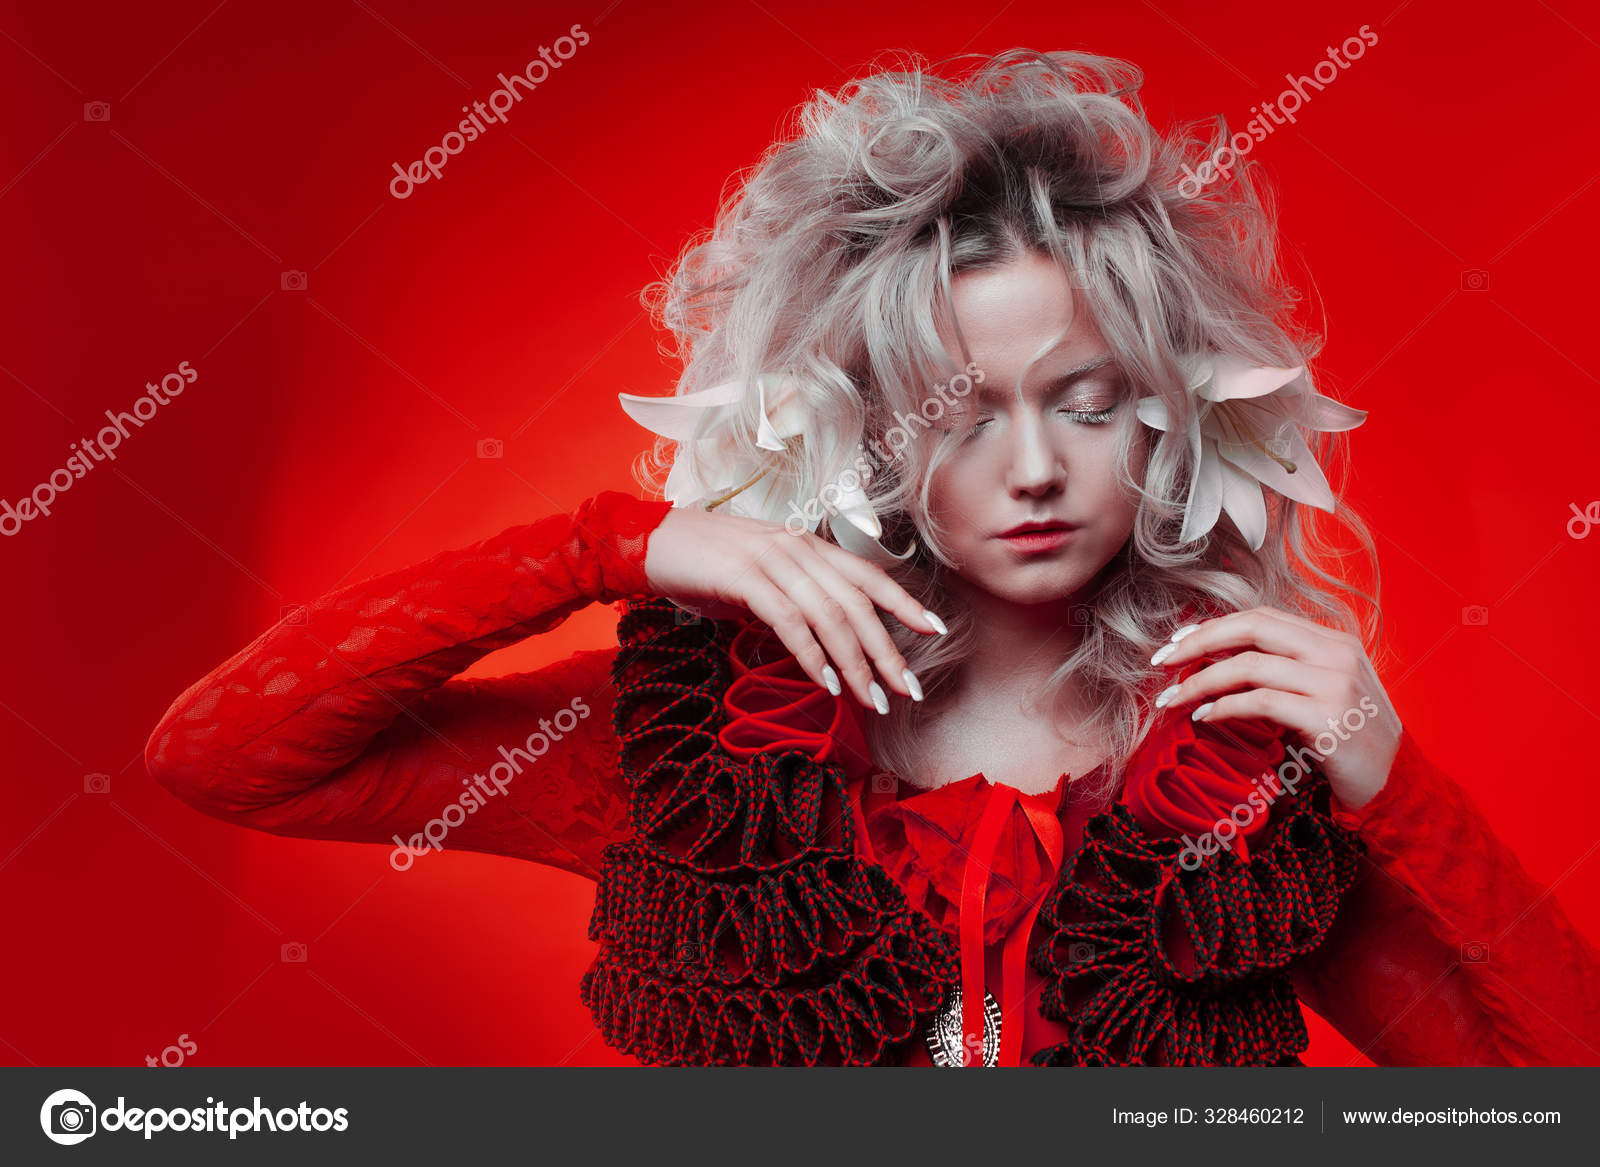 Shades Of Red Strange Attractive Woman In A Red Outfit On A Red Background With Lily Flowers In Her Hair Stock Photo C Kriscole 328460212